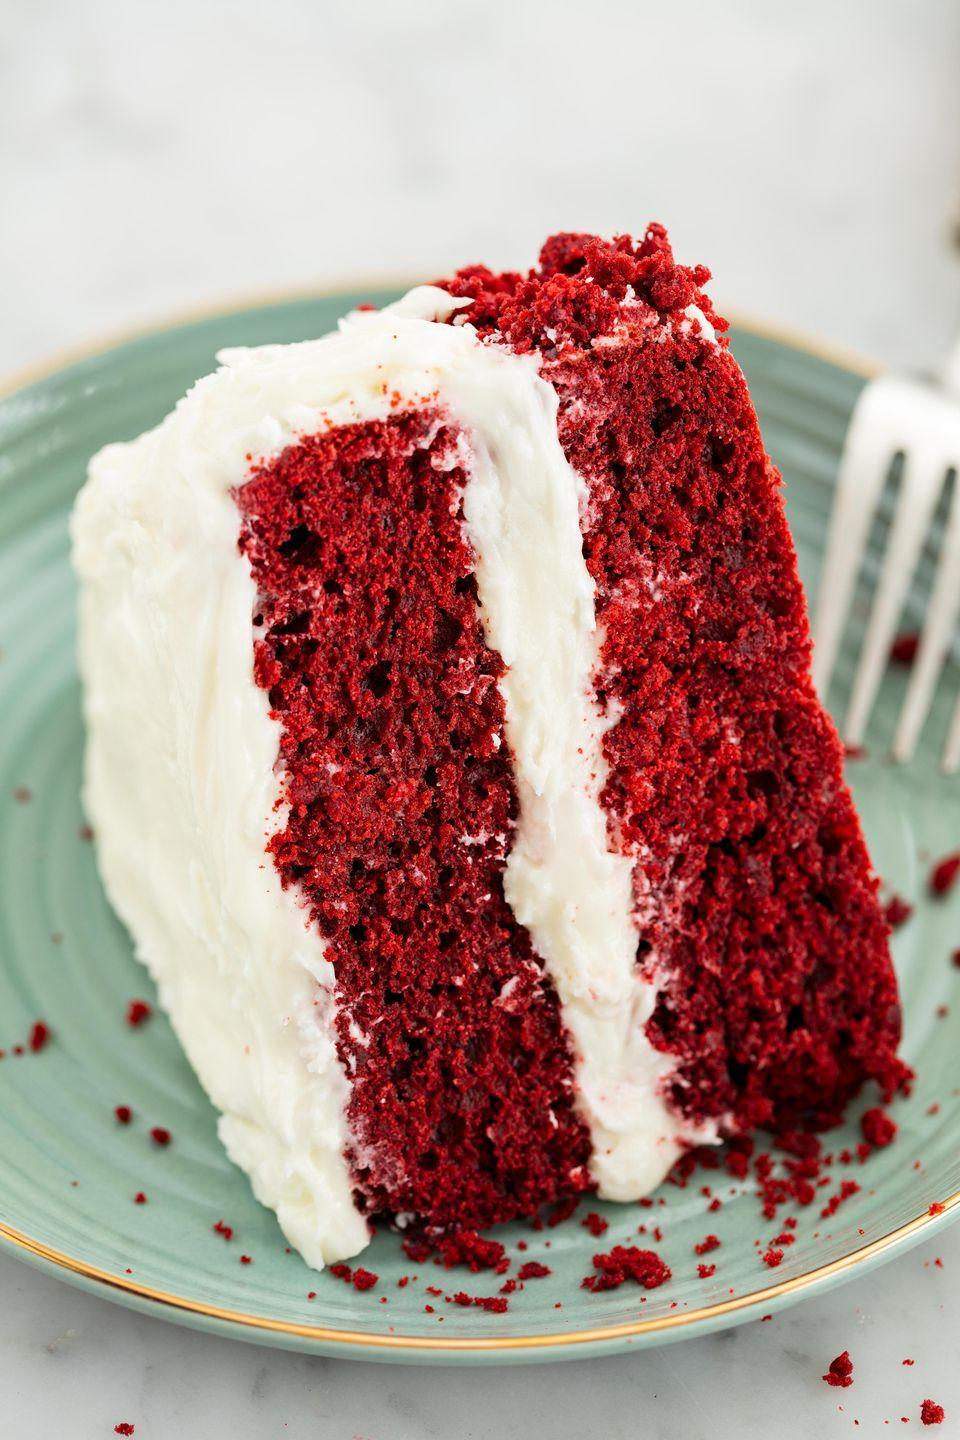 "<p>The official cake of love (and Southern hospitality).</p><p>Get the recipe from <a href=""https://www.delish.com/cooking/recipe-ideas/recipes/a58093/best-red-velvet-cake-recipe/"" rel=""nofollow noopener"" target=""_blank"" data-ylk=""slk:Delish"" class=""link rapid-noclick-resp"">Delish</a>.</p>"